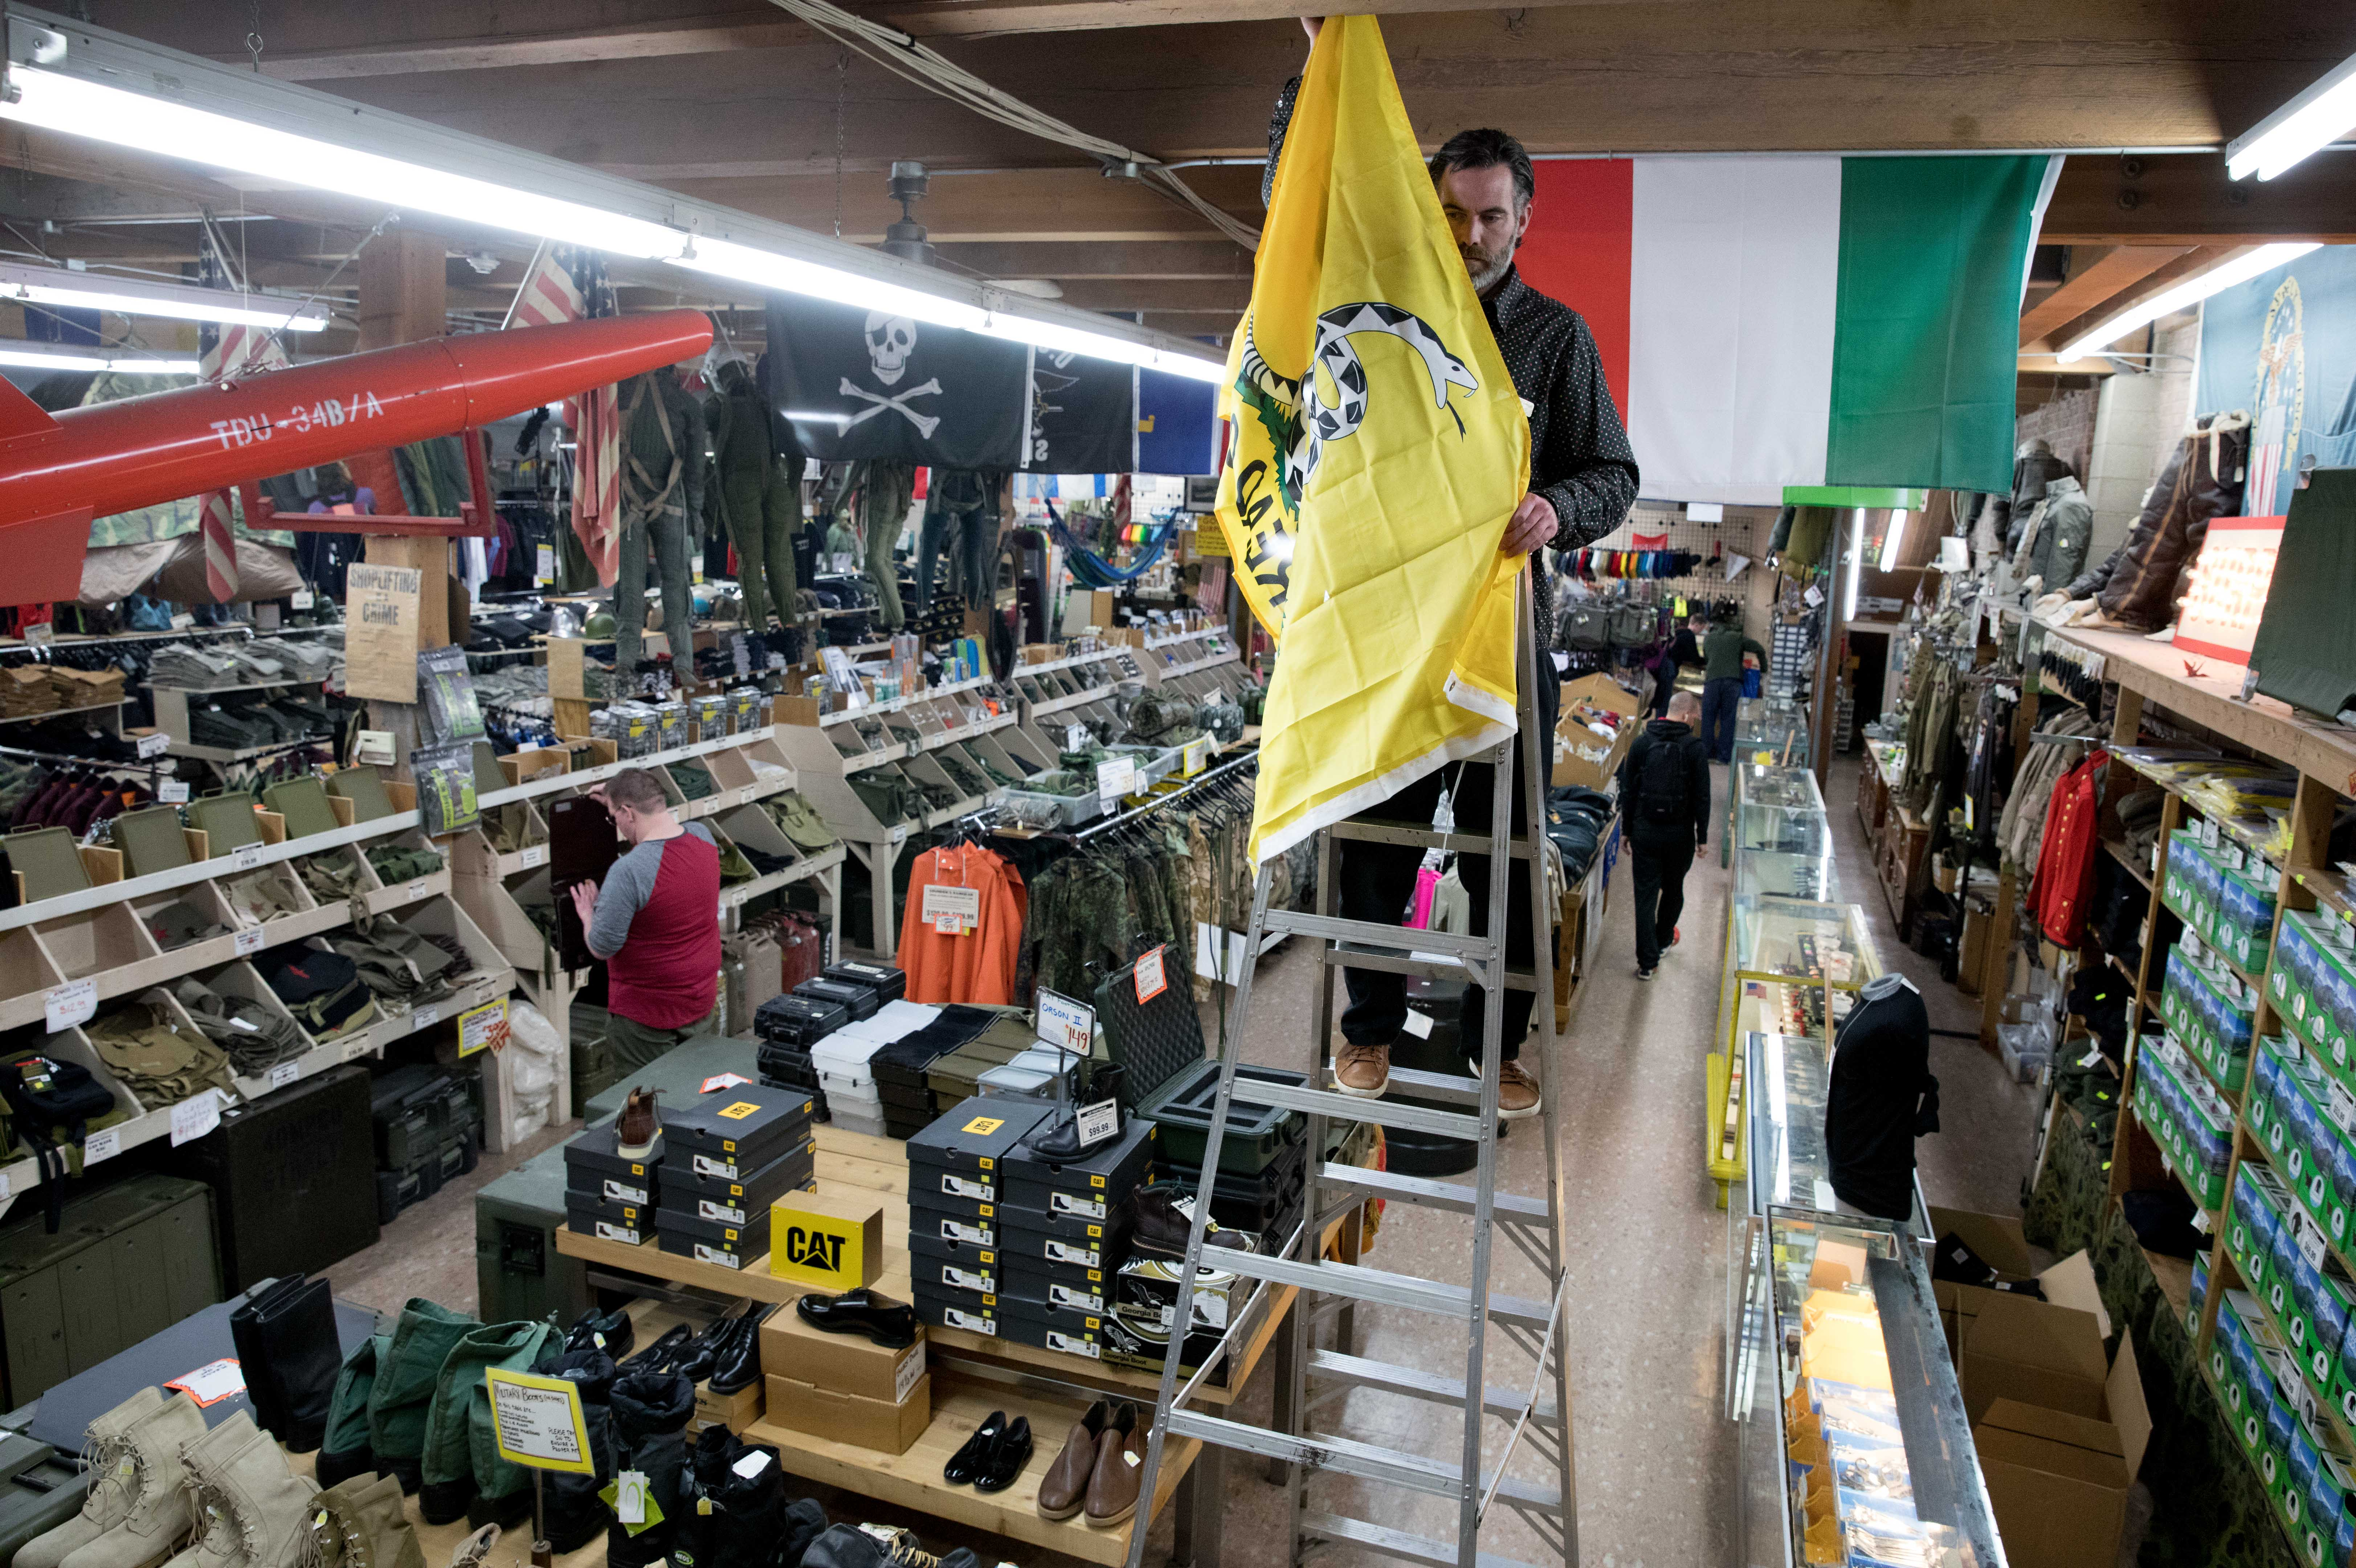 So Seattle: The military surplus store that's a mainstay ... - photo#32